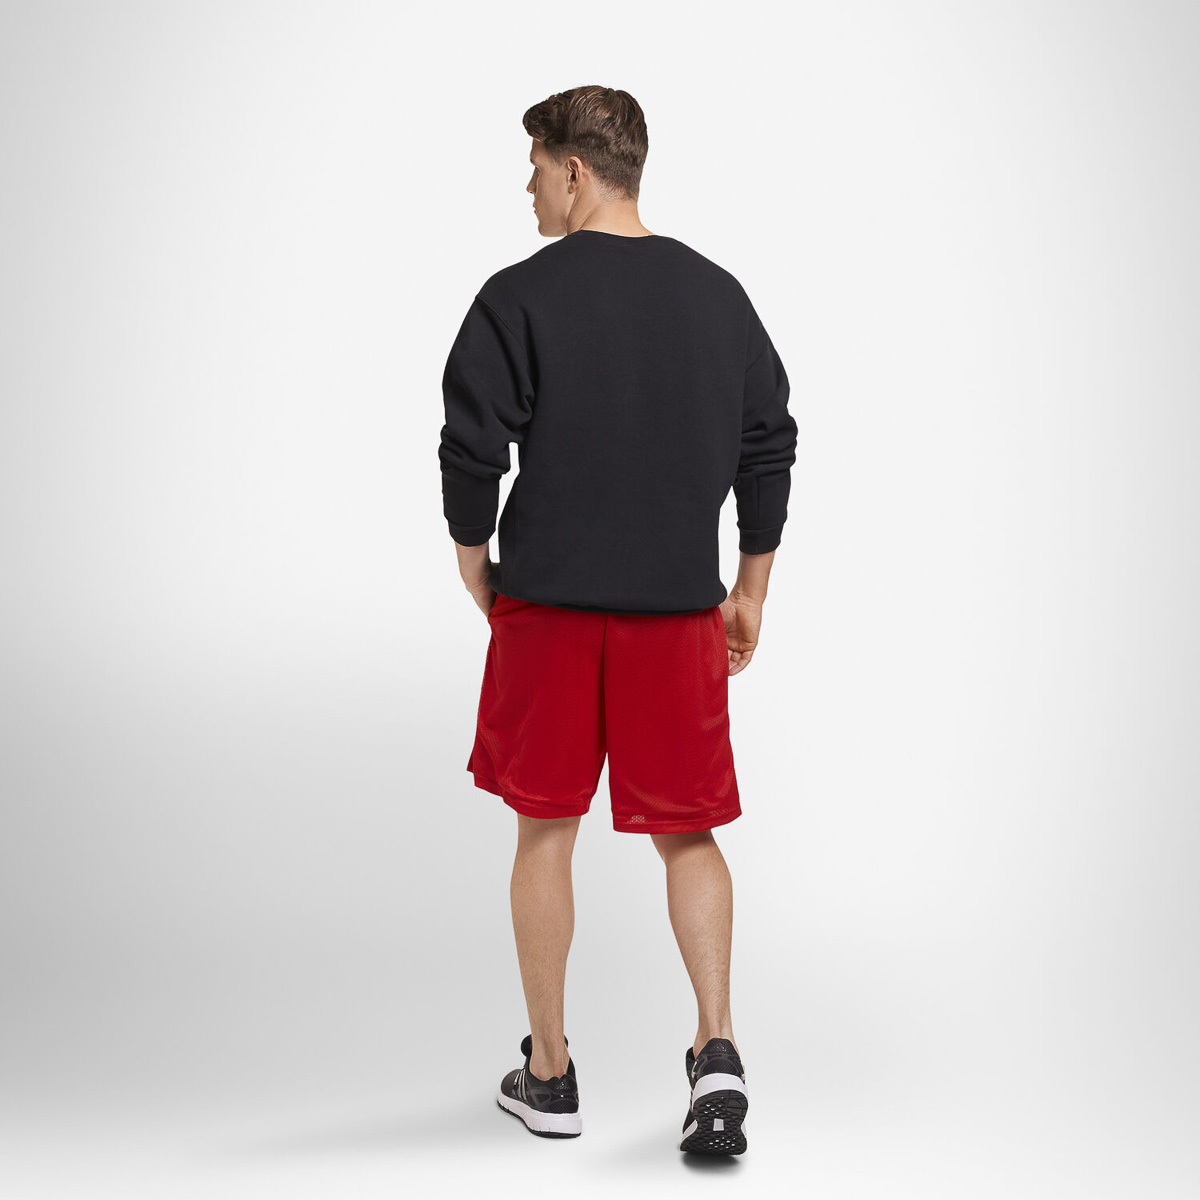 thumbnail 6 - Russell-Athletic-Mens-Shorts-With-Pockets-Mesh-Moisture-Wicking-Gym-Activewear